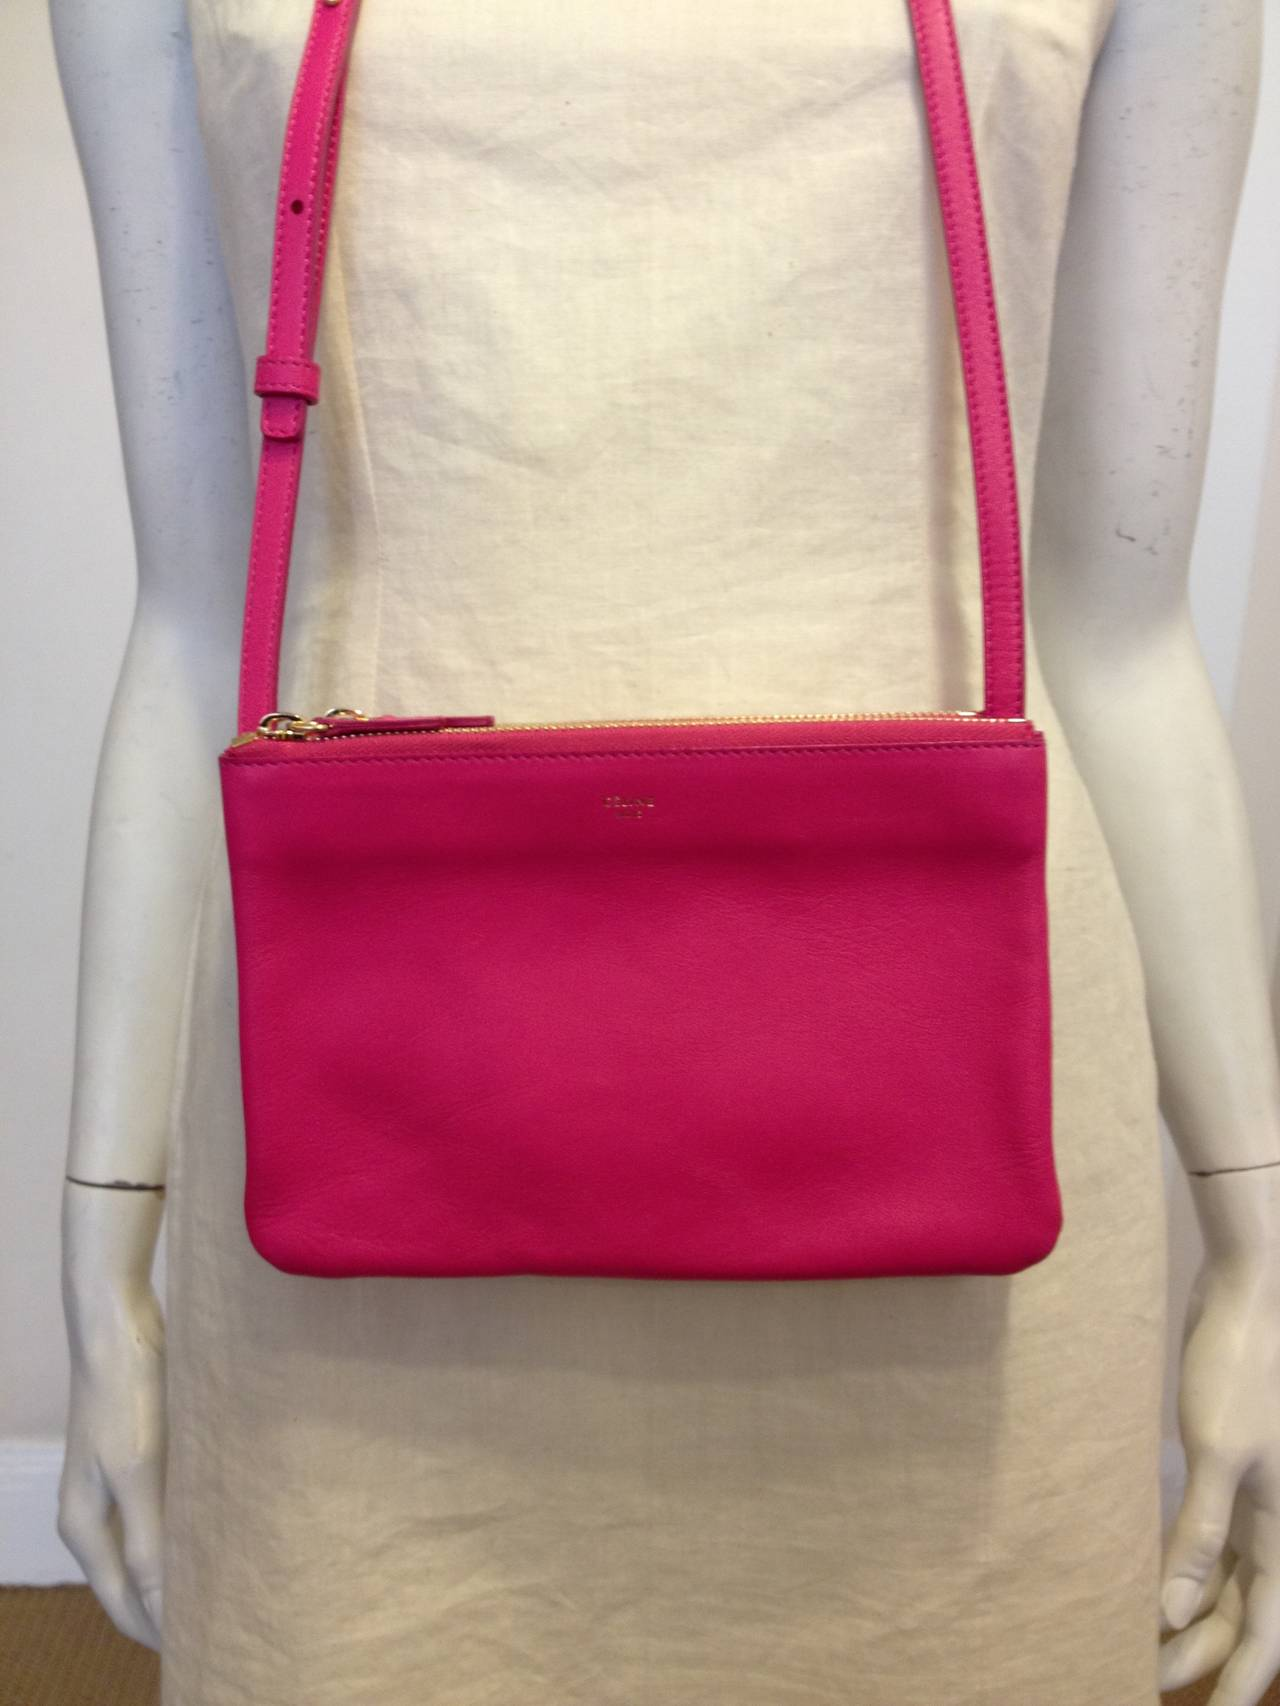 Celine Hot Pink Trio Clutch at 1stdibs